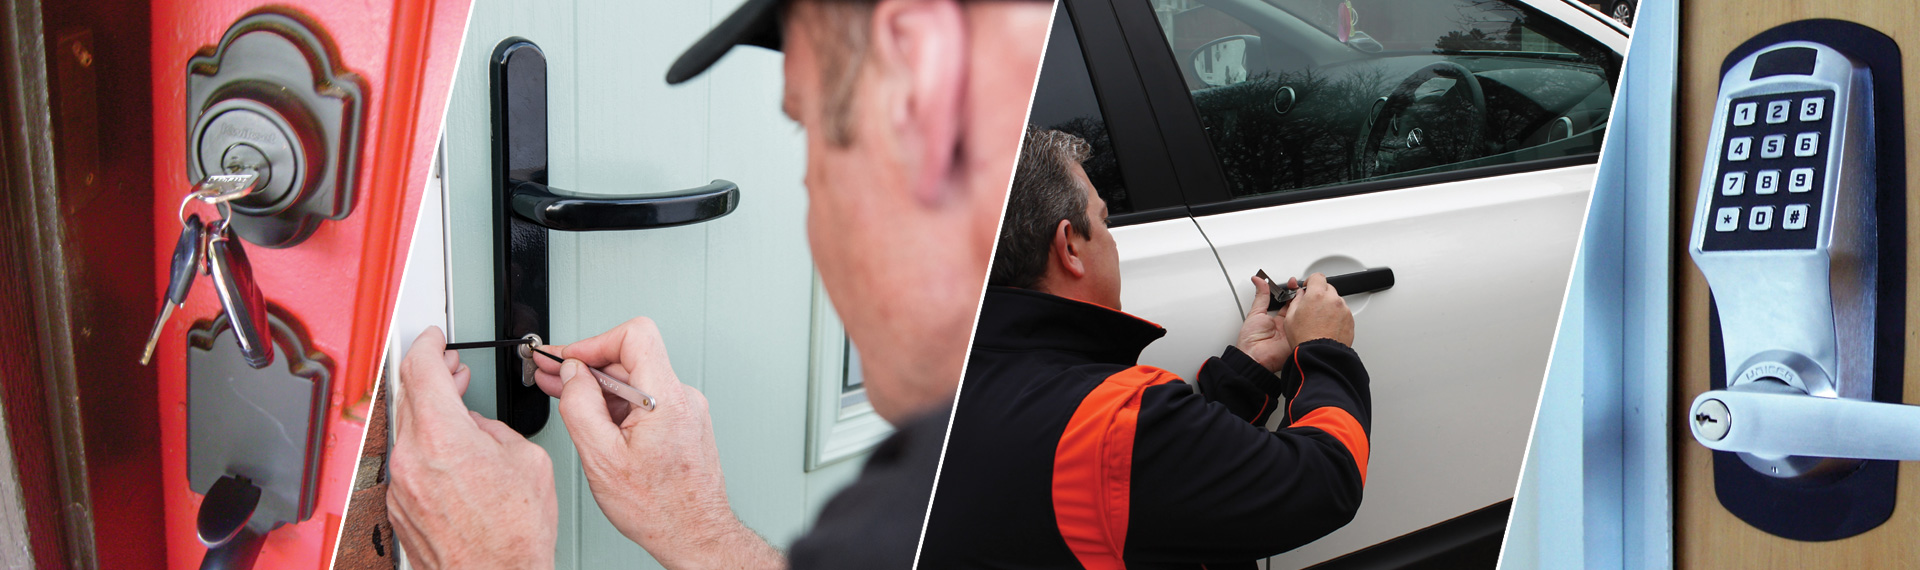 We are proud to offer 24 hour services all over the area. Our services are fully bonded, licensed & insured. We are experts at dealing with all makes of modern locks.